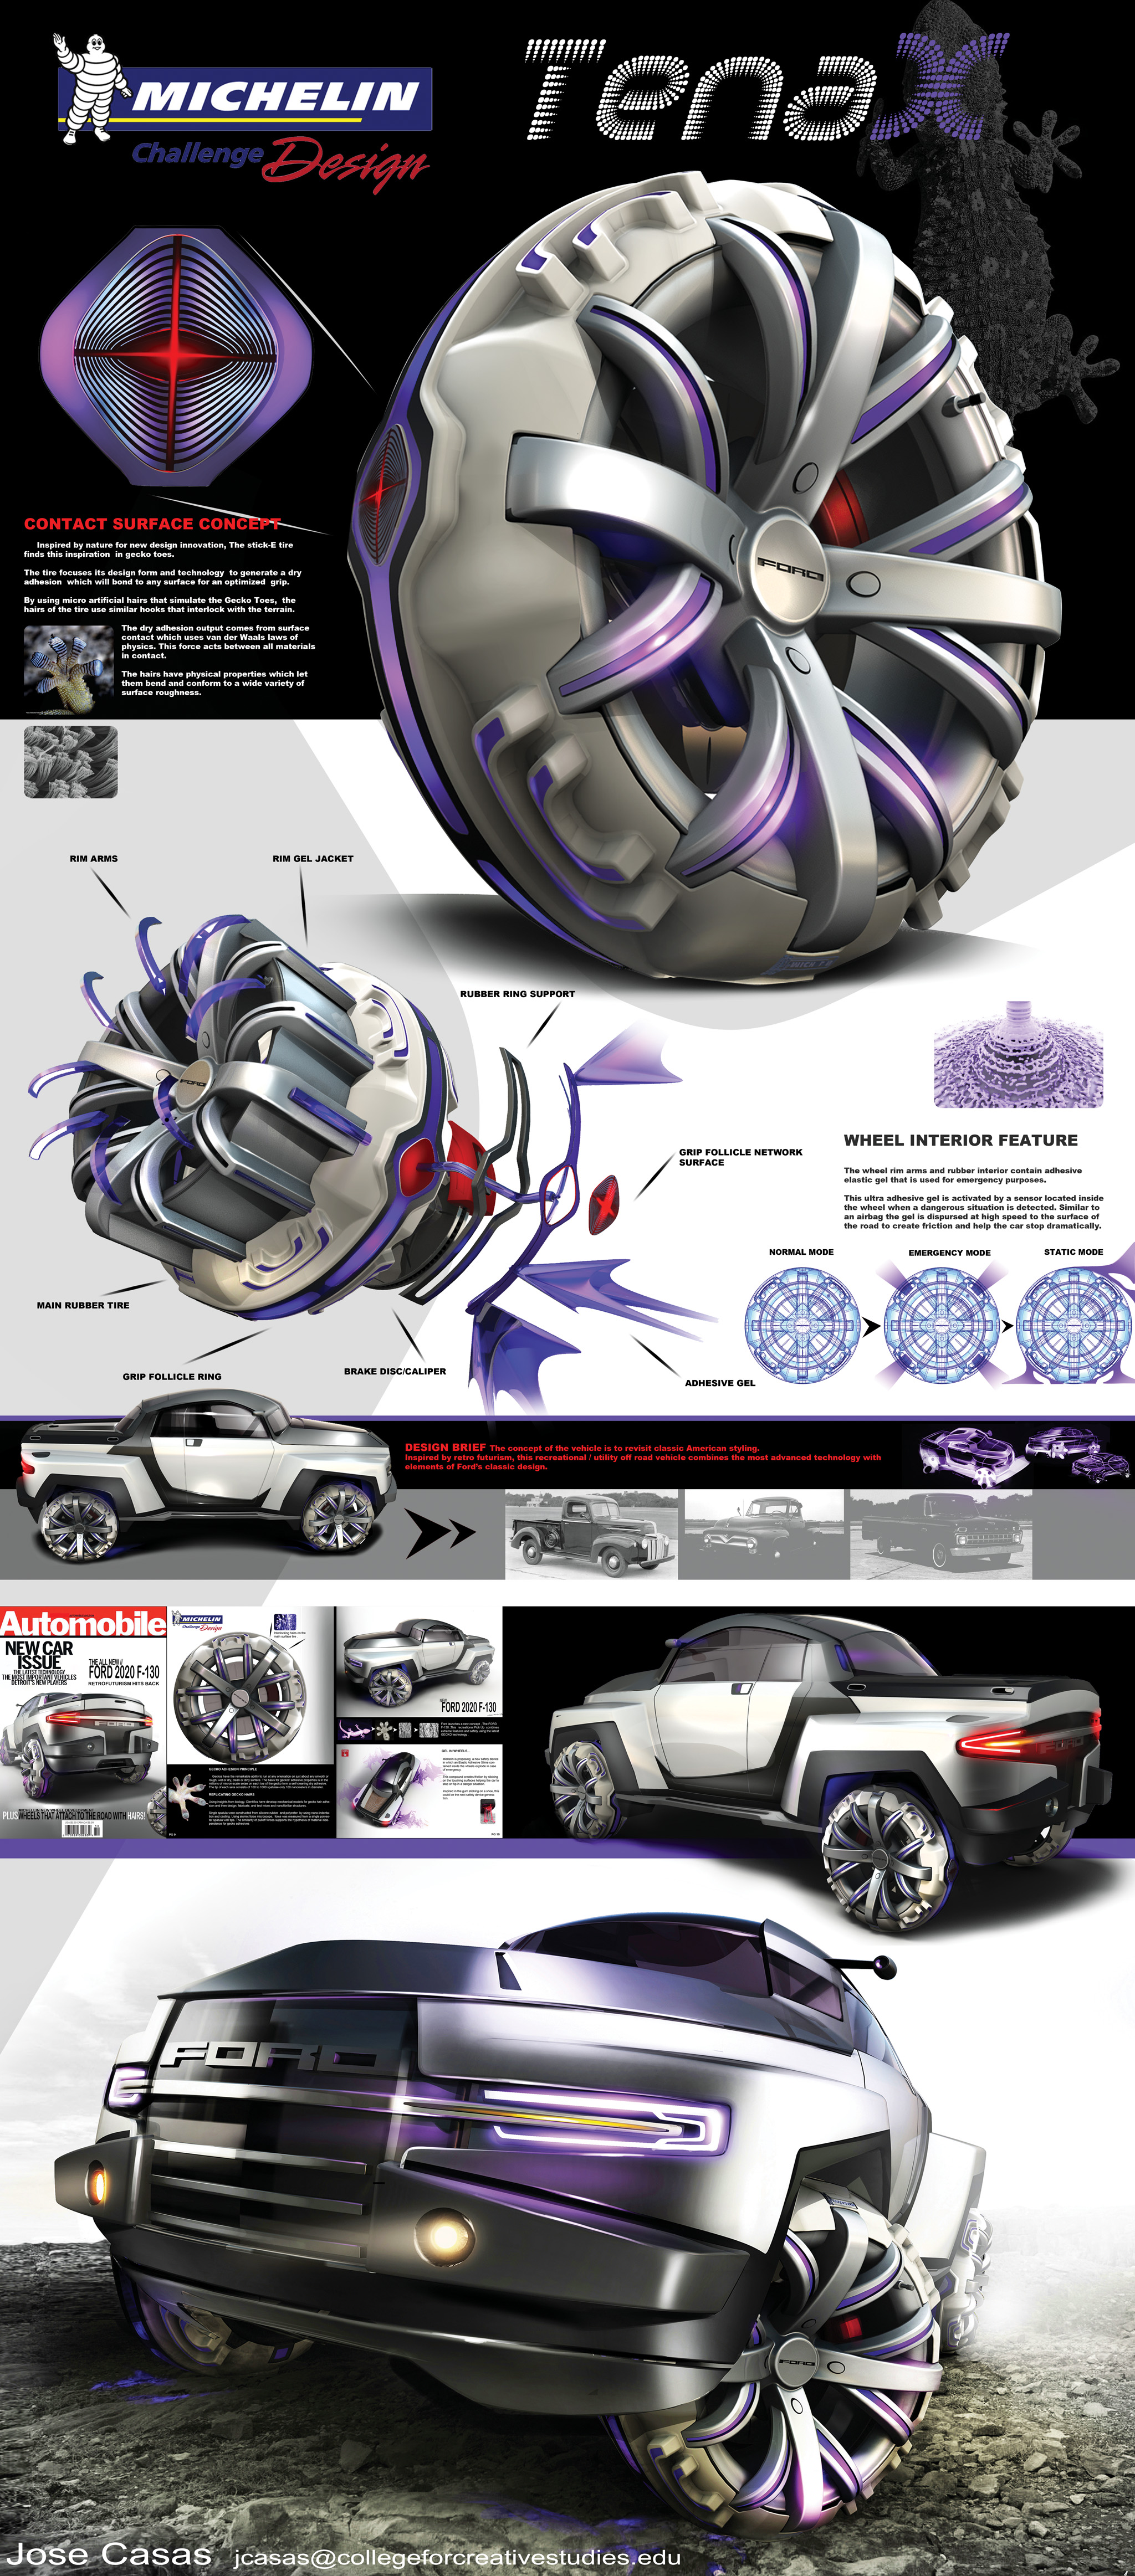 2011 Ccs Winners Michelin Challenge Design